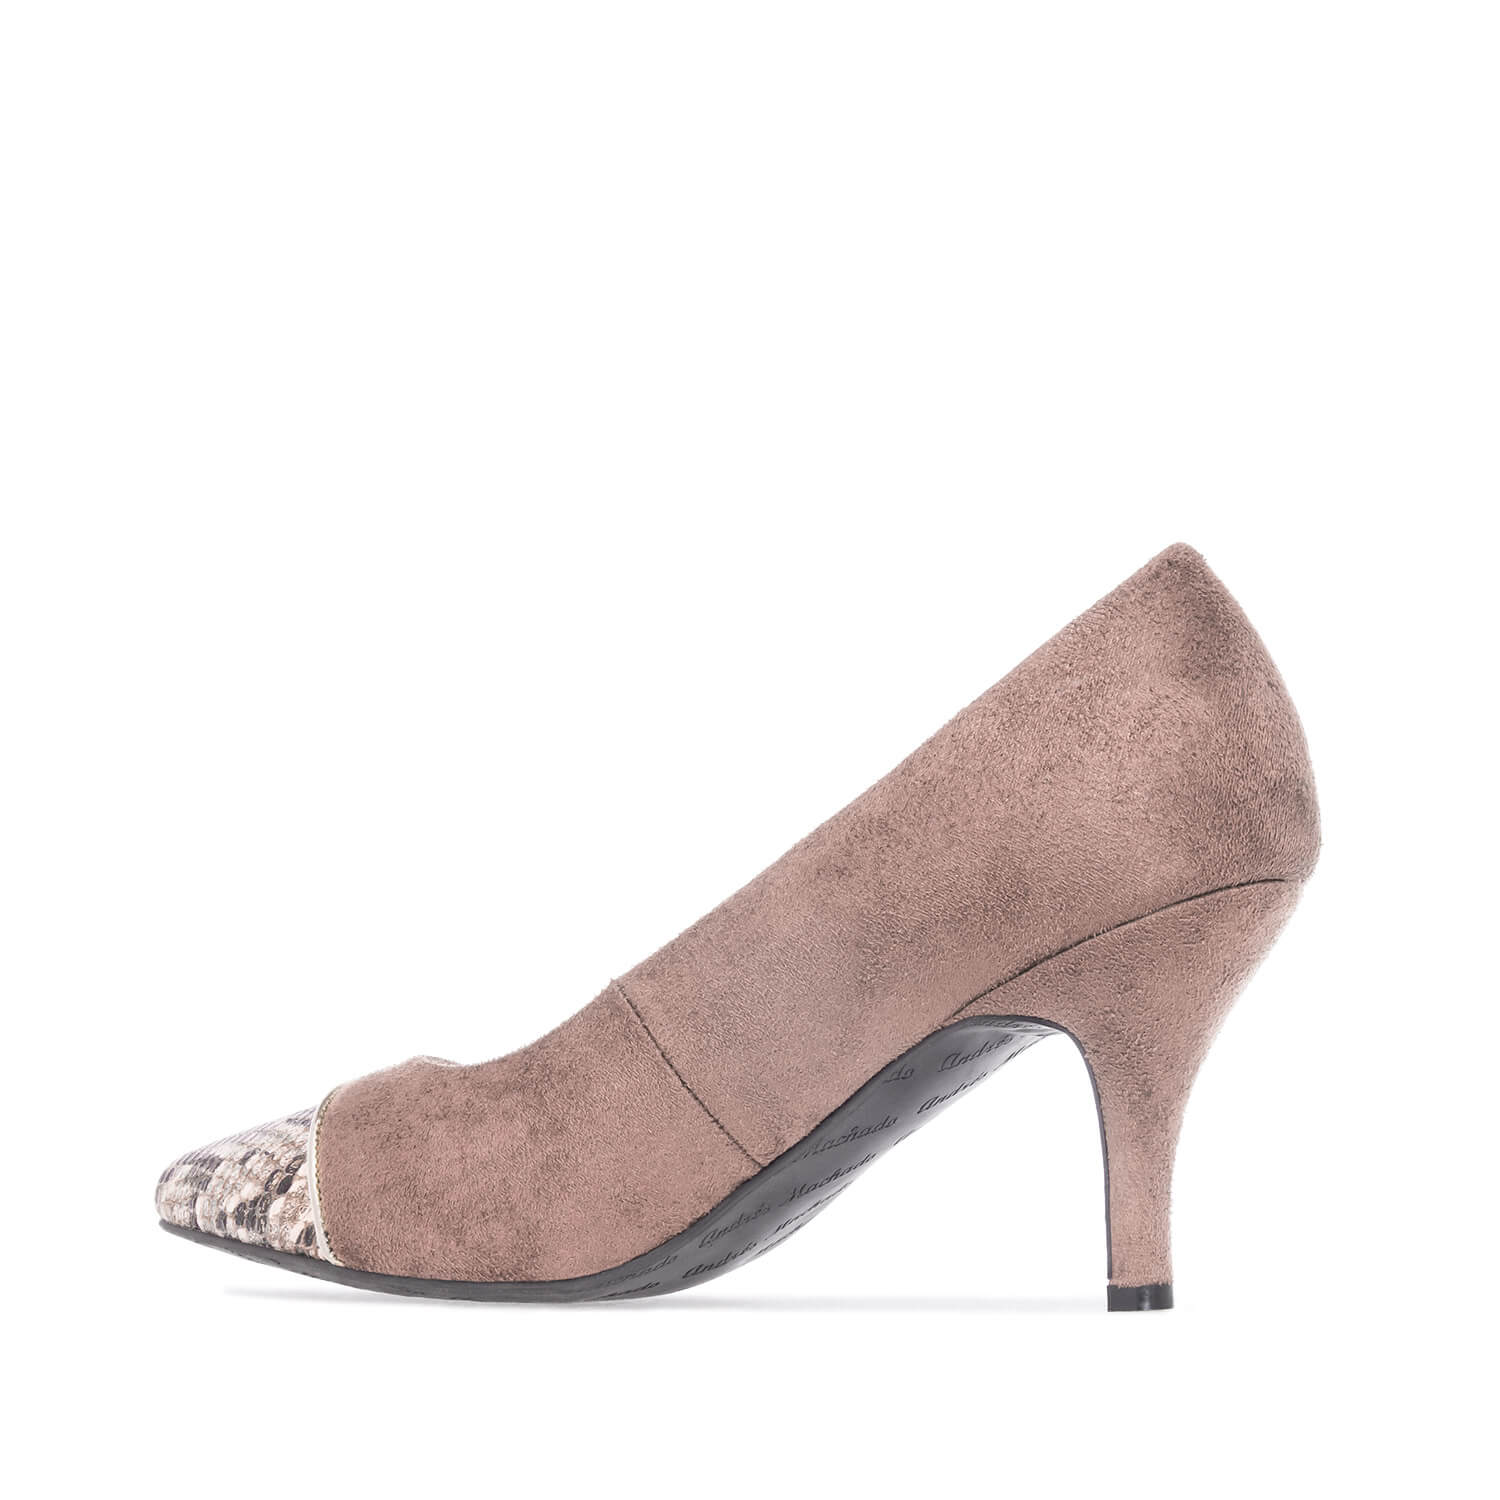 Pumps in Beige faux Suede